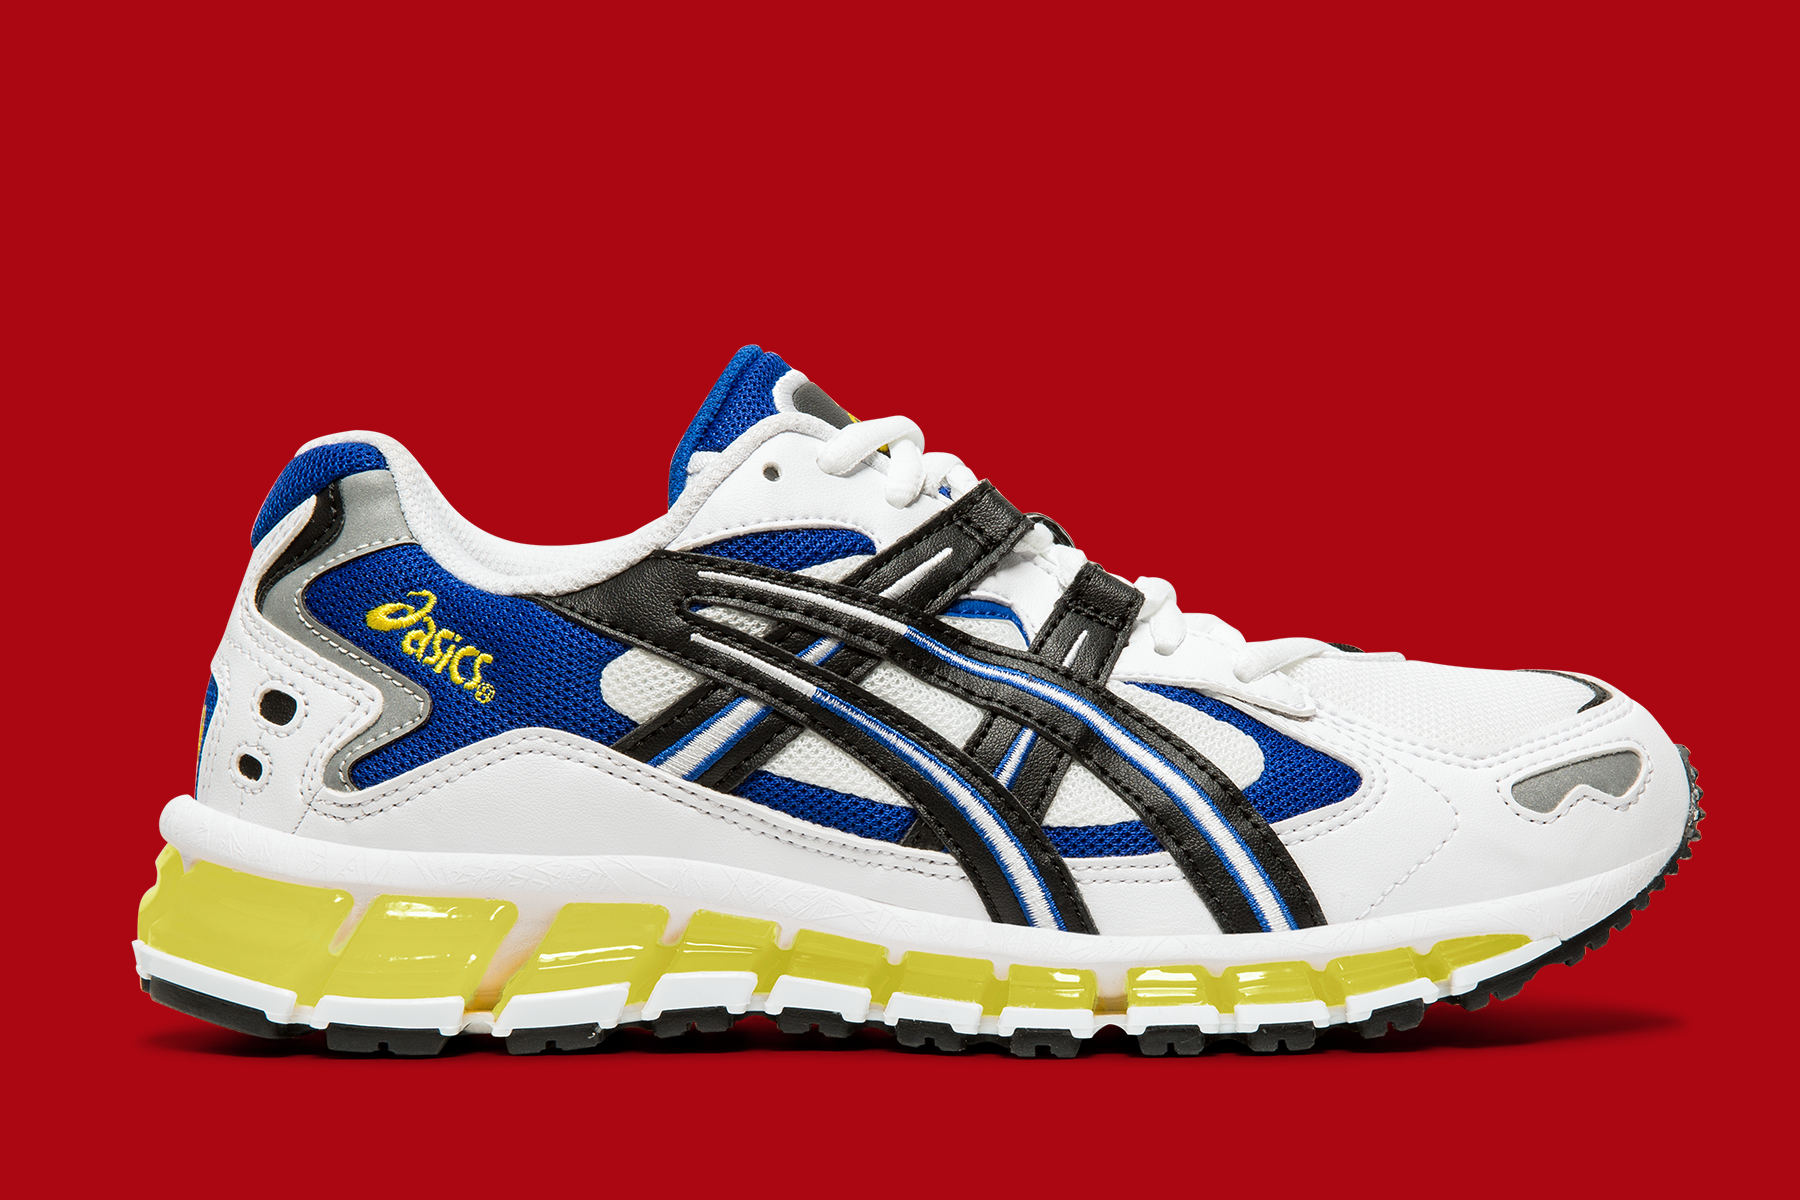 161dcd19e4b2c Today, ASICS has unveiled the GEL-KAYANO® 5 360 model, a hybrid shoe  combining the iconic upper from the GEL-KAYANO 5 OG shoe with the advanced  sole of the ...